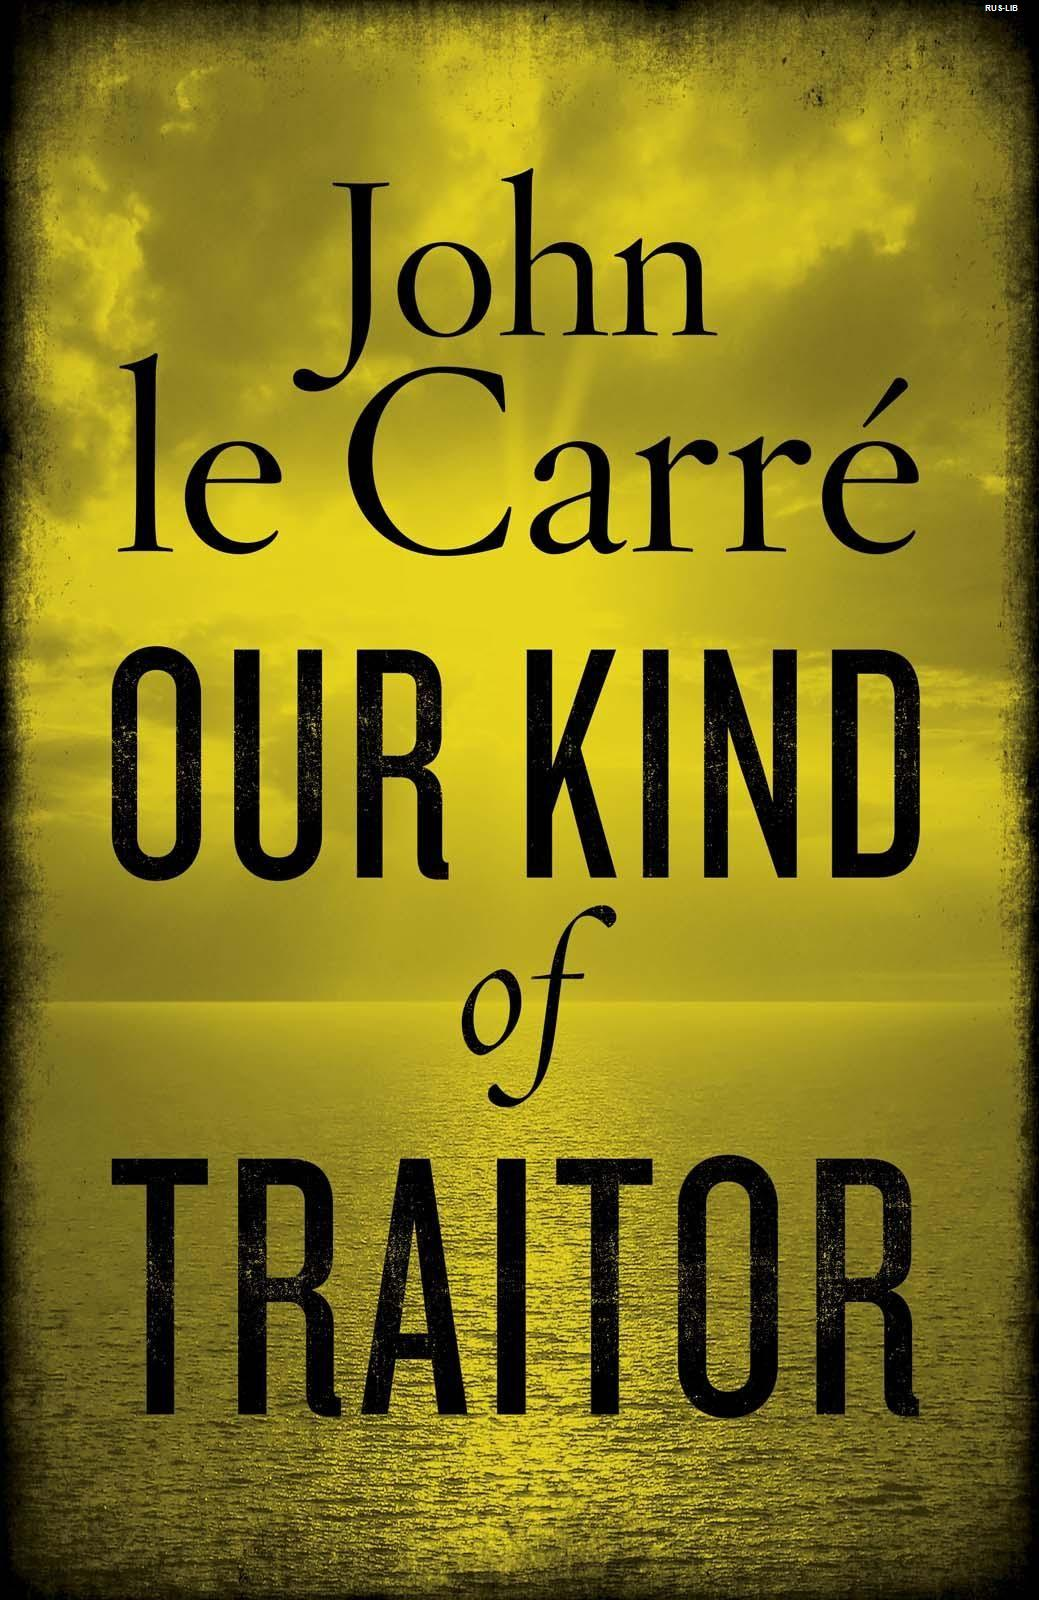 Our Kind of Traitor (Un Tra�dor Com els Nostres; Edicions 62)